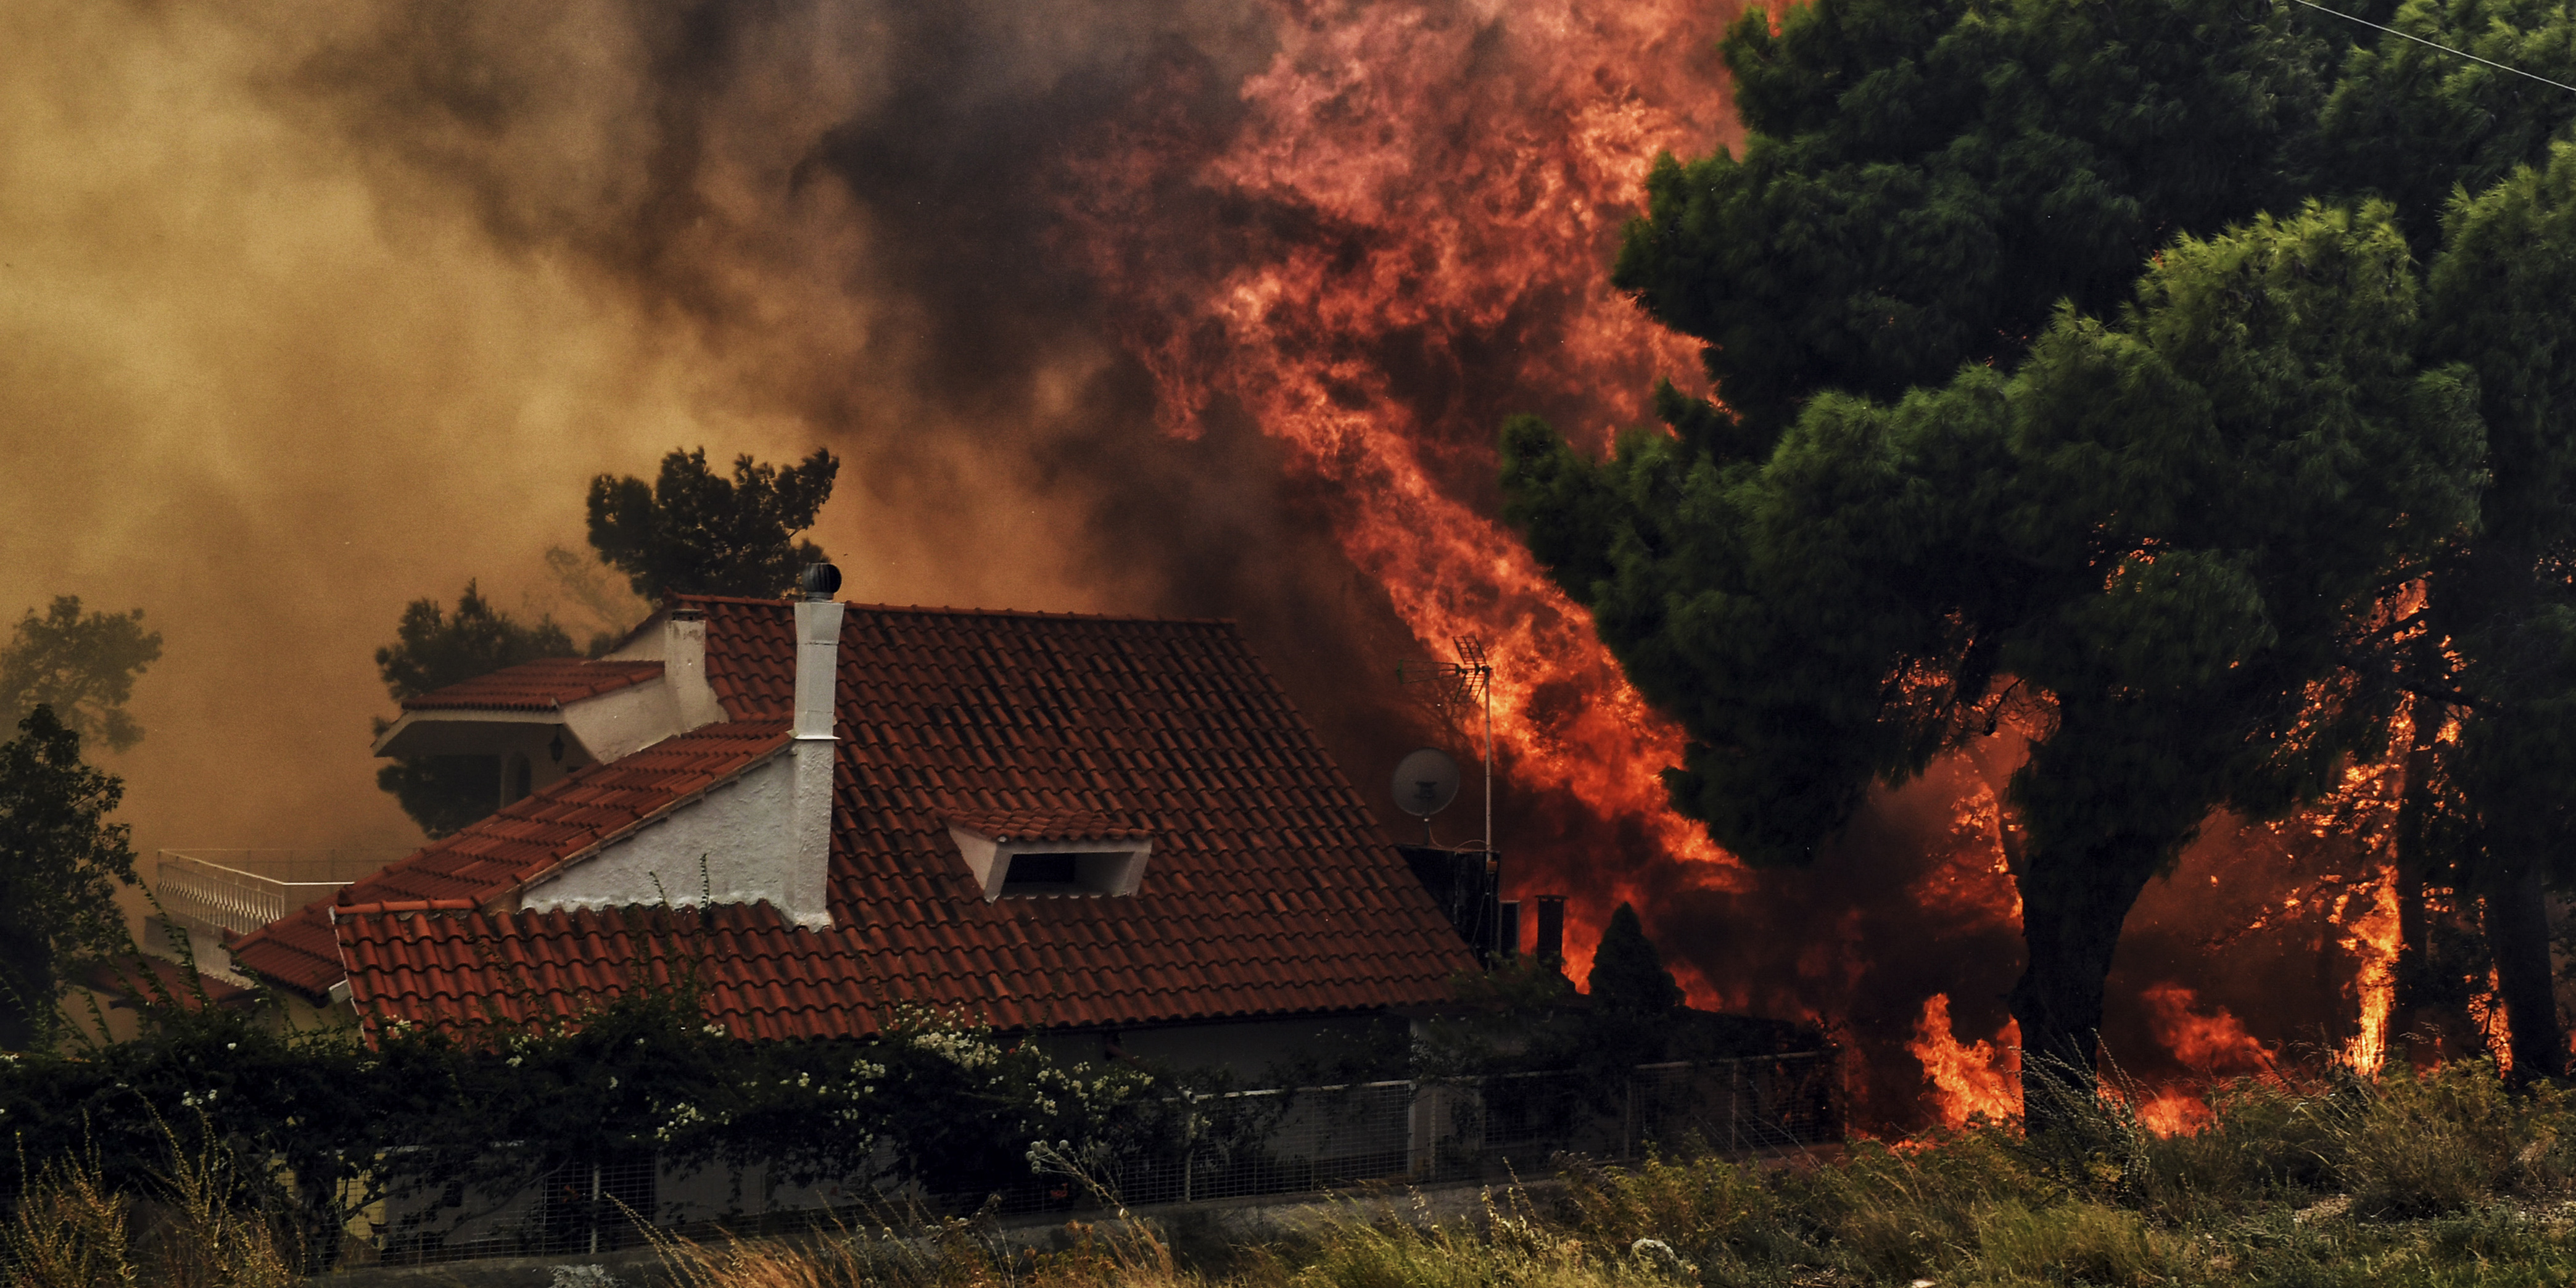 """A house is threatened by a huge blaze during a wildfire in Kineta, near Athens, on July 23, 2018. More than 300 firefighters, five aircraft and two helicopters have been mobilised to tackle the """"extremely difficult"""" situation due to strong gusts of wind, Athens fire chief Achille Tzouvaras said. / AFP PHOTO / VALERIE GACHE"""